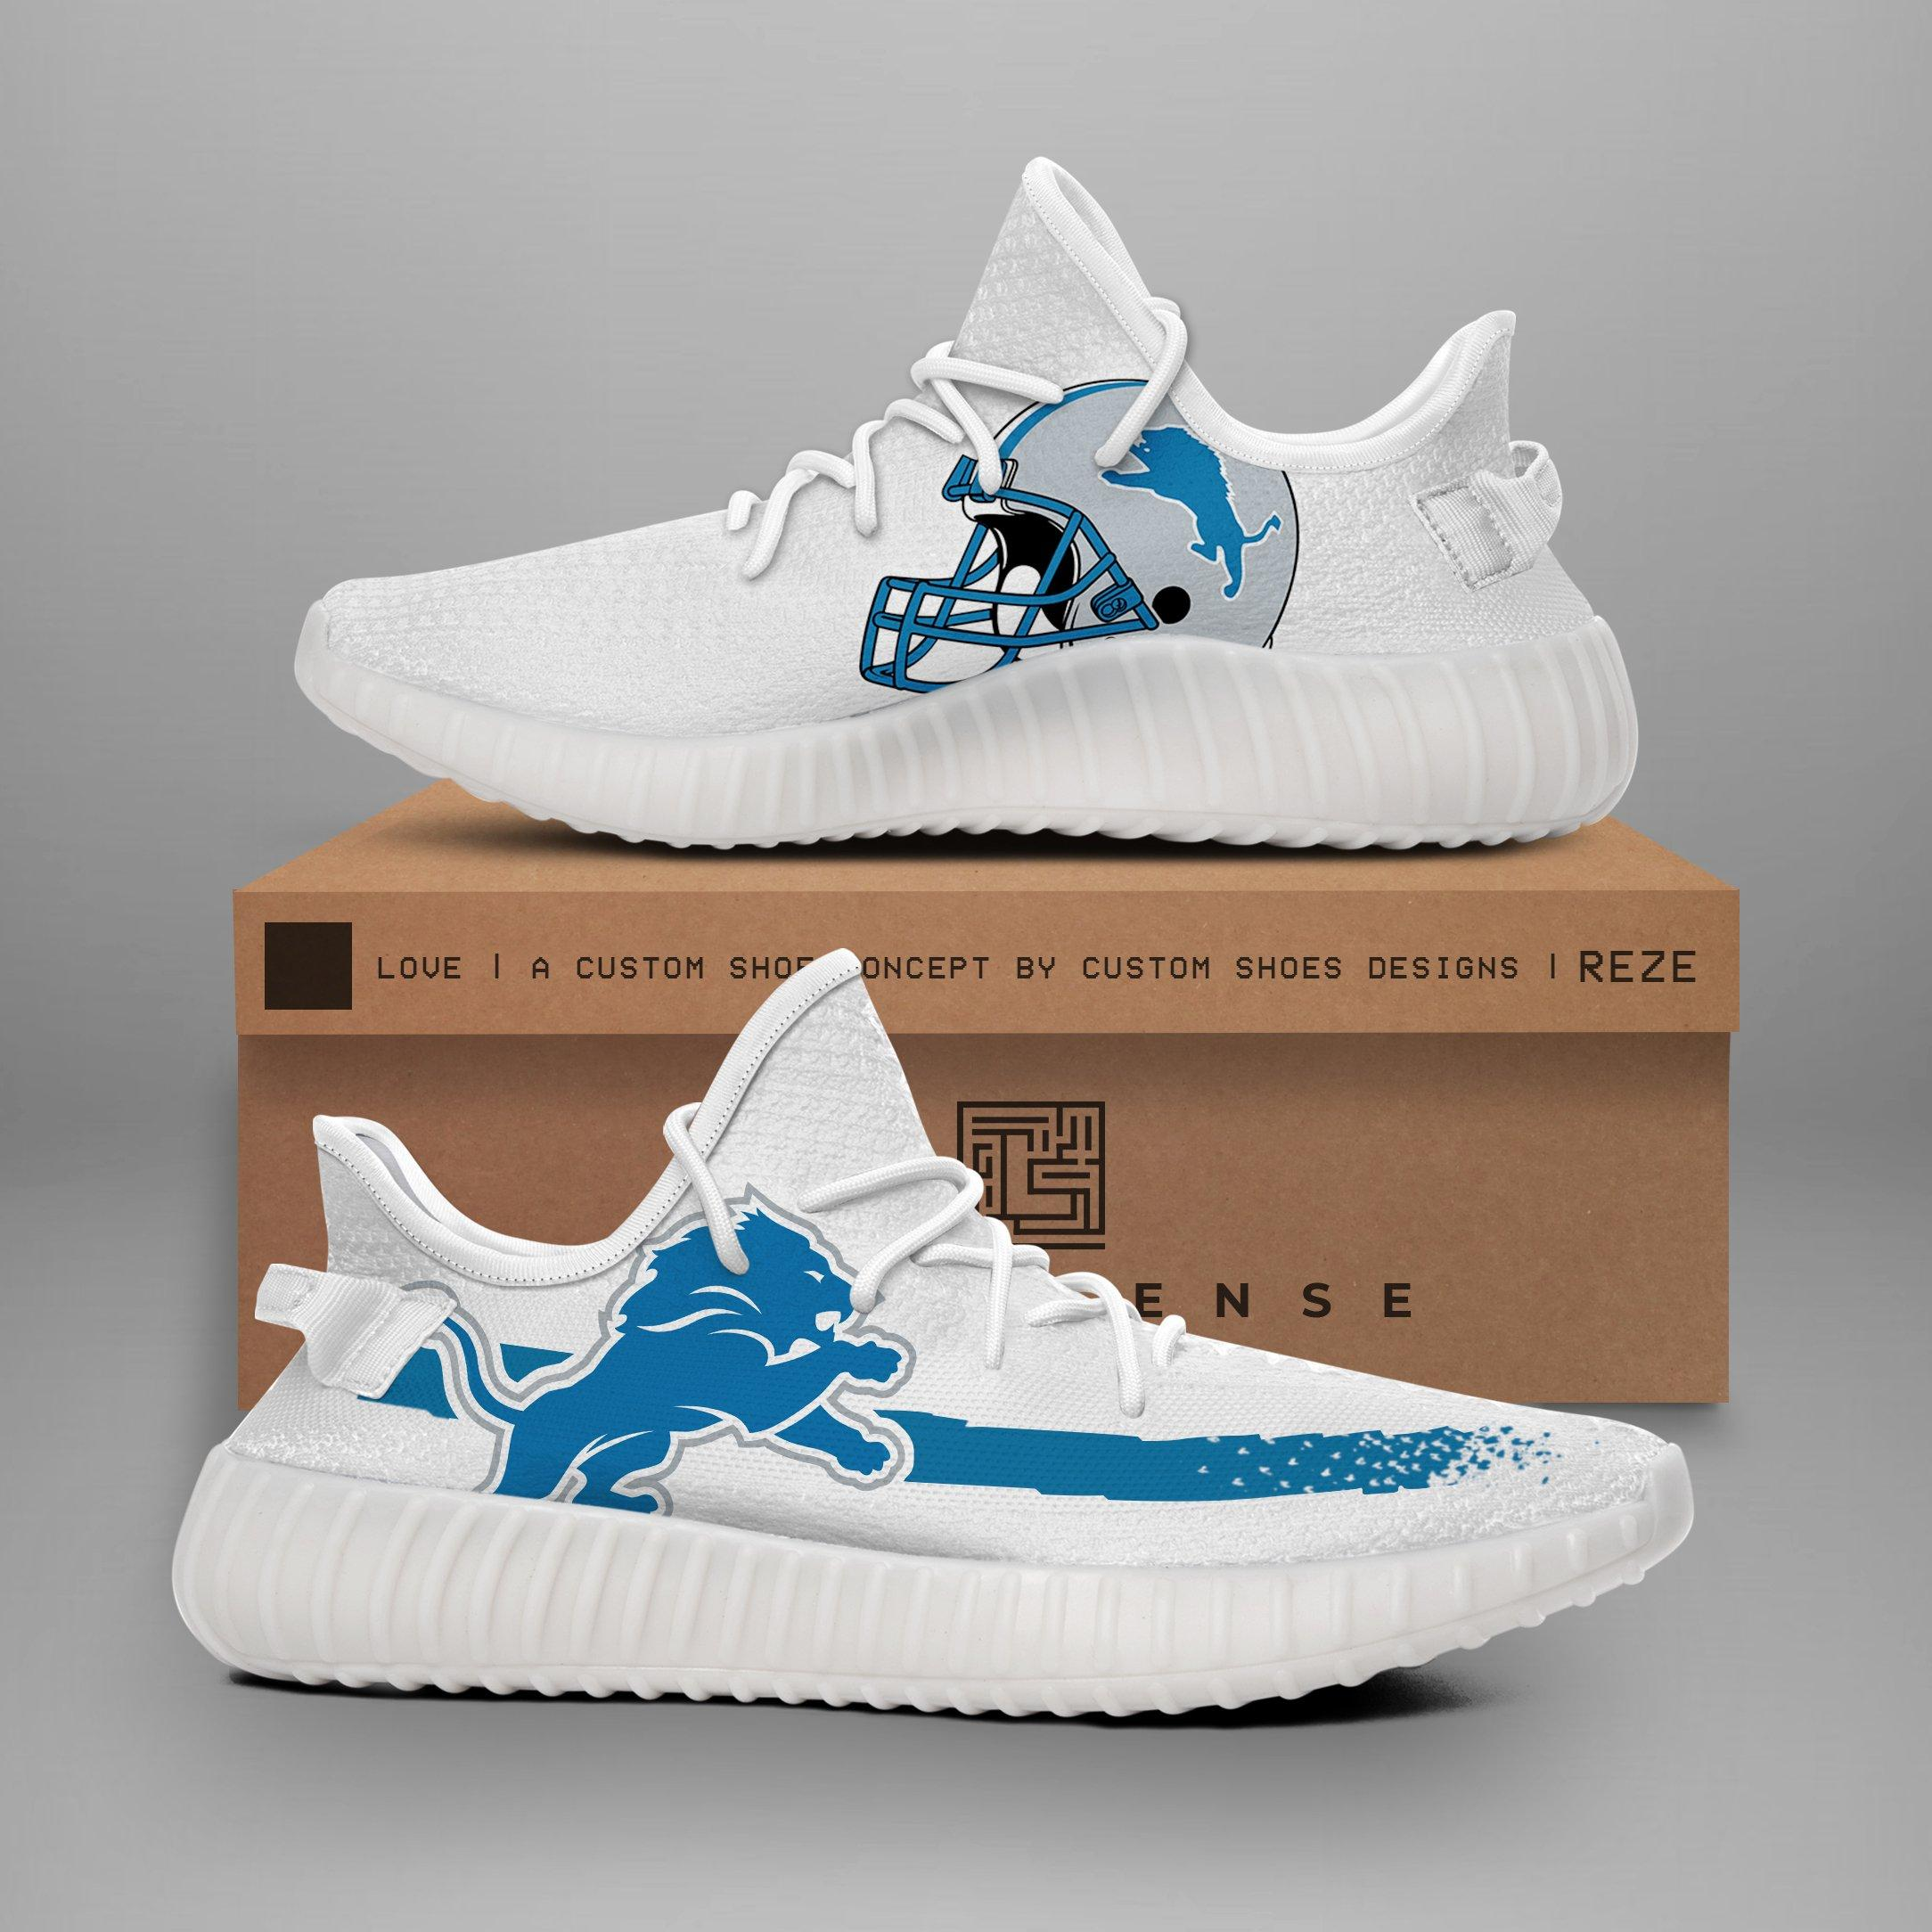 77d41da7 Detroit Lions NFL Teams Yeezy Boost 350 V2 Top Branding Trends 2019